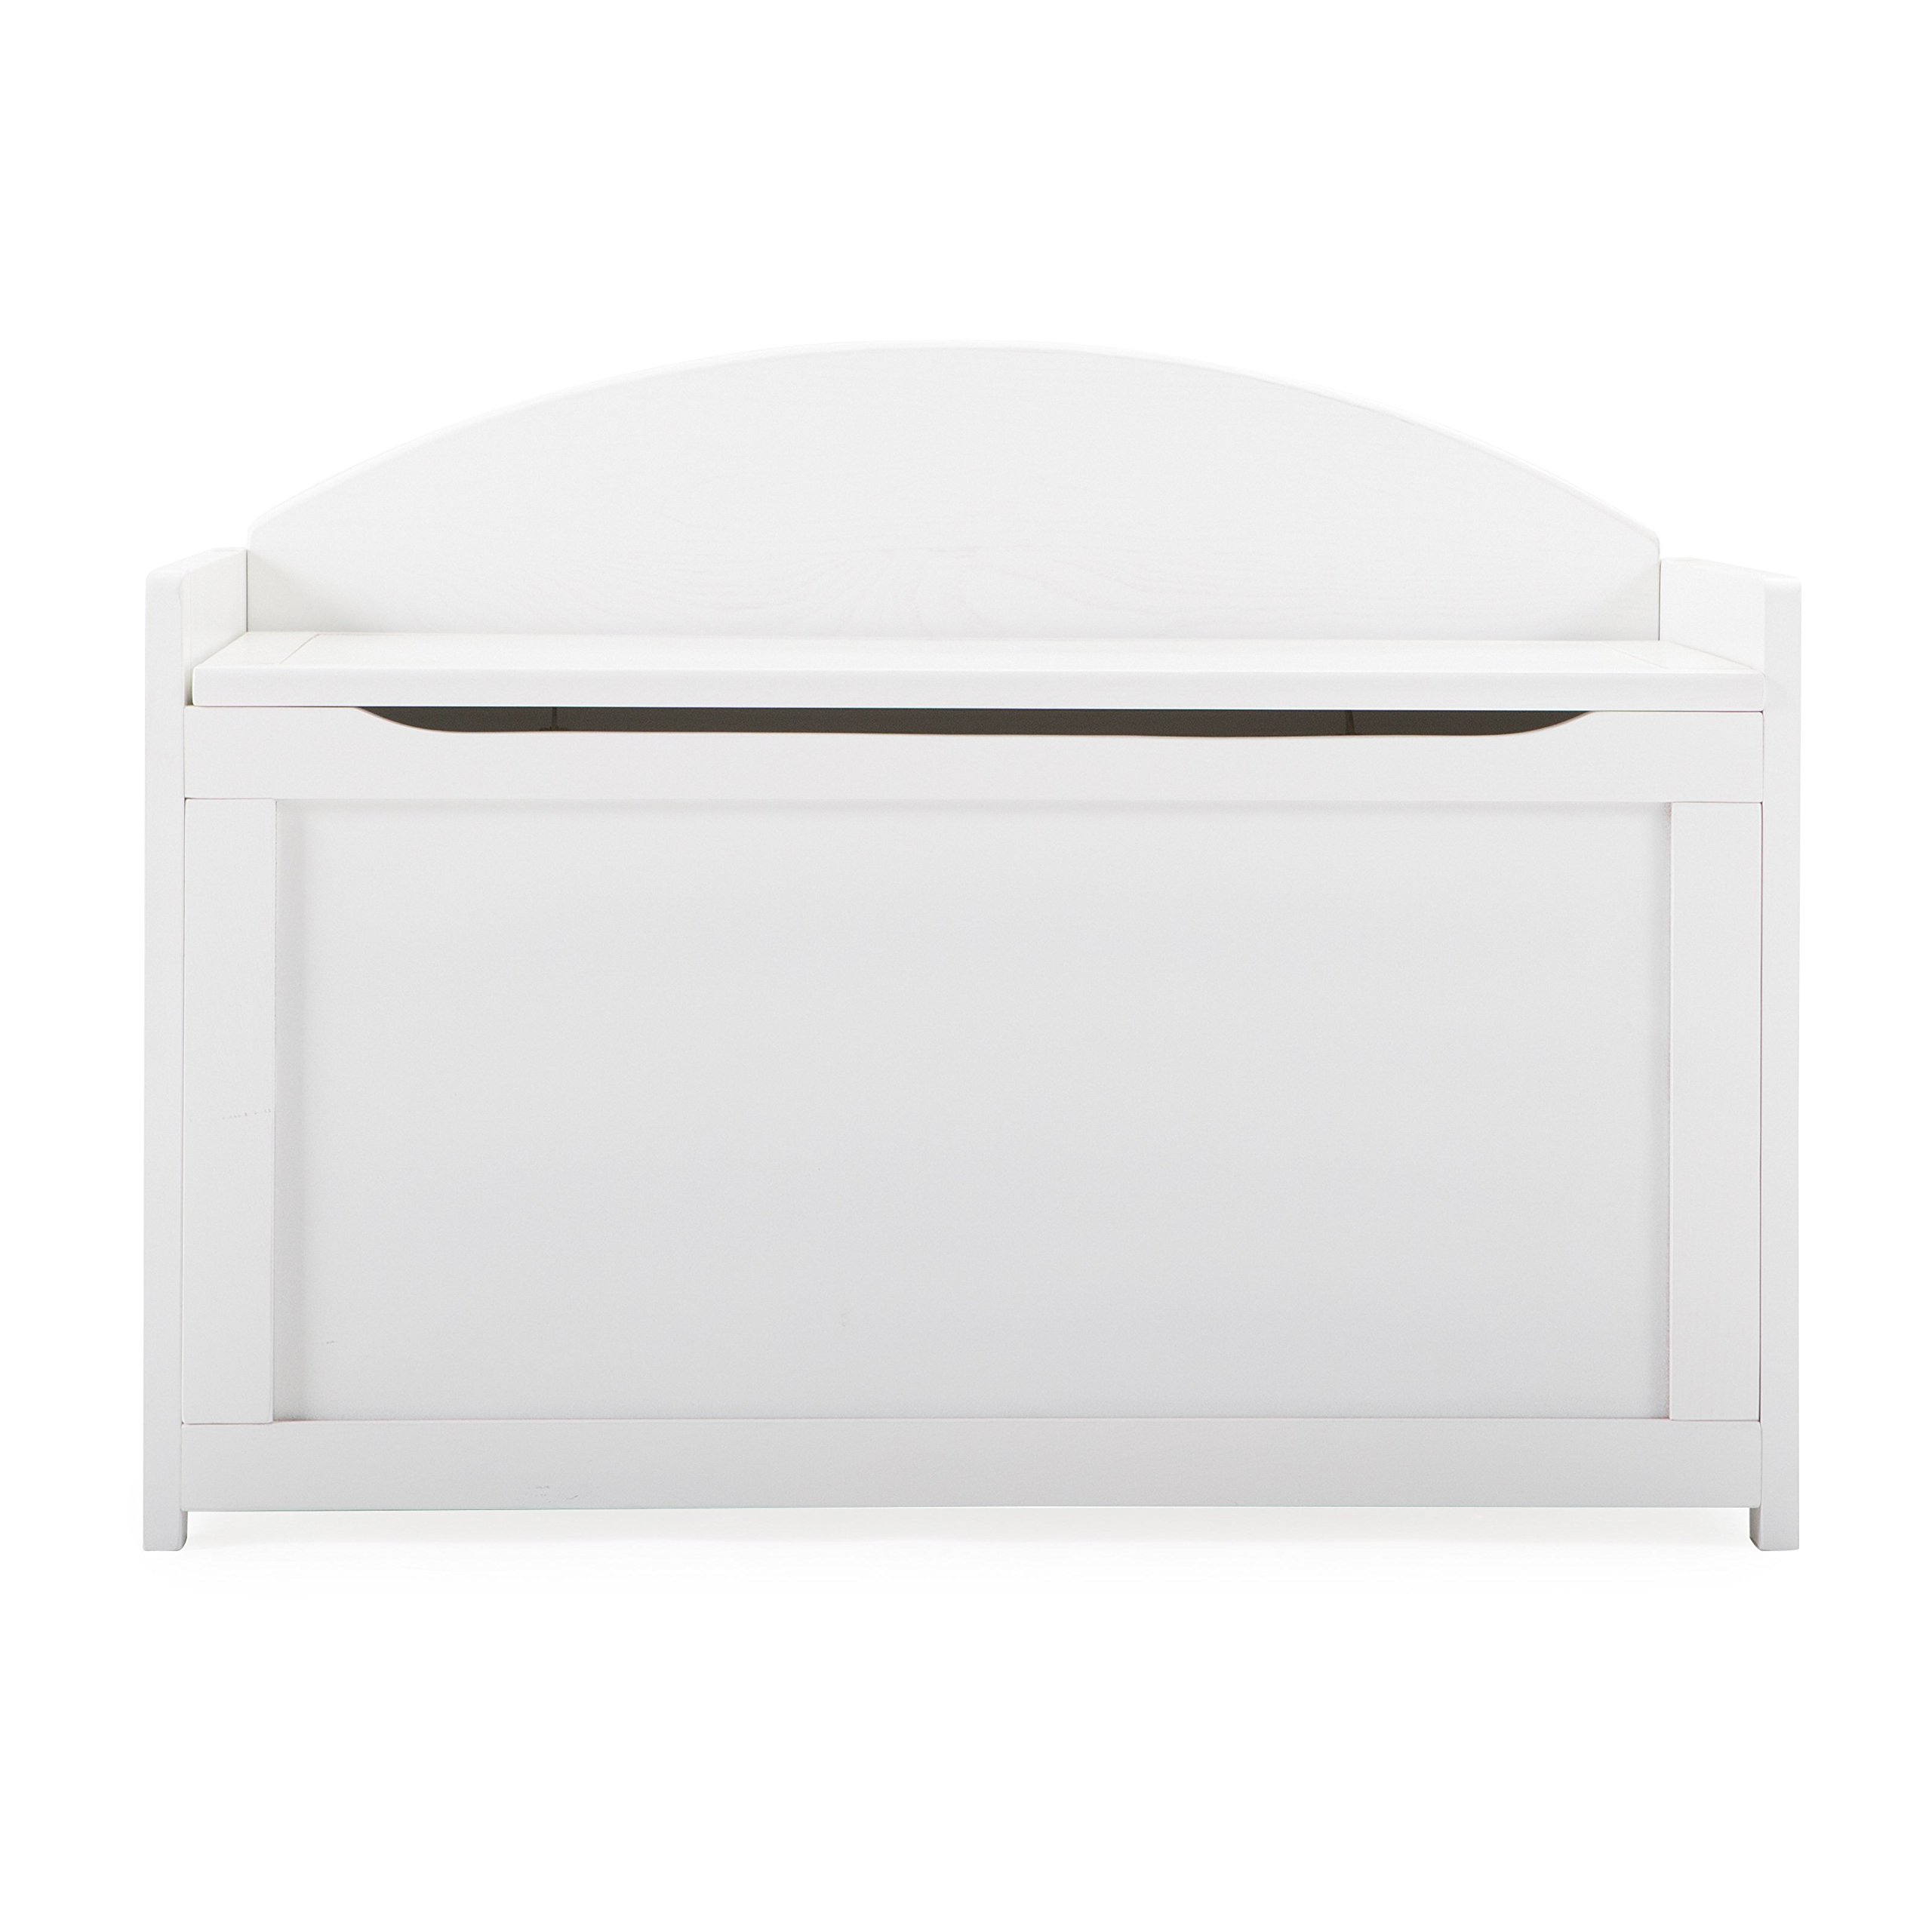 Elegant Toy Storage Chest With Durable Beech Wood Construction, White Finish, Air Holes Provided For Hide-N-Seek, Doubles As A Bench, Built-In Handles For Transport, Tight Safety Hinges